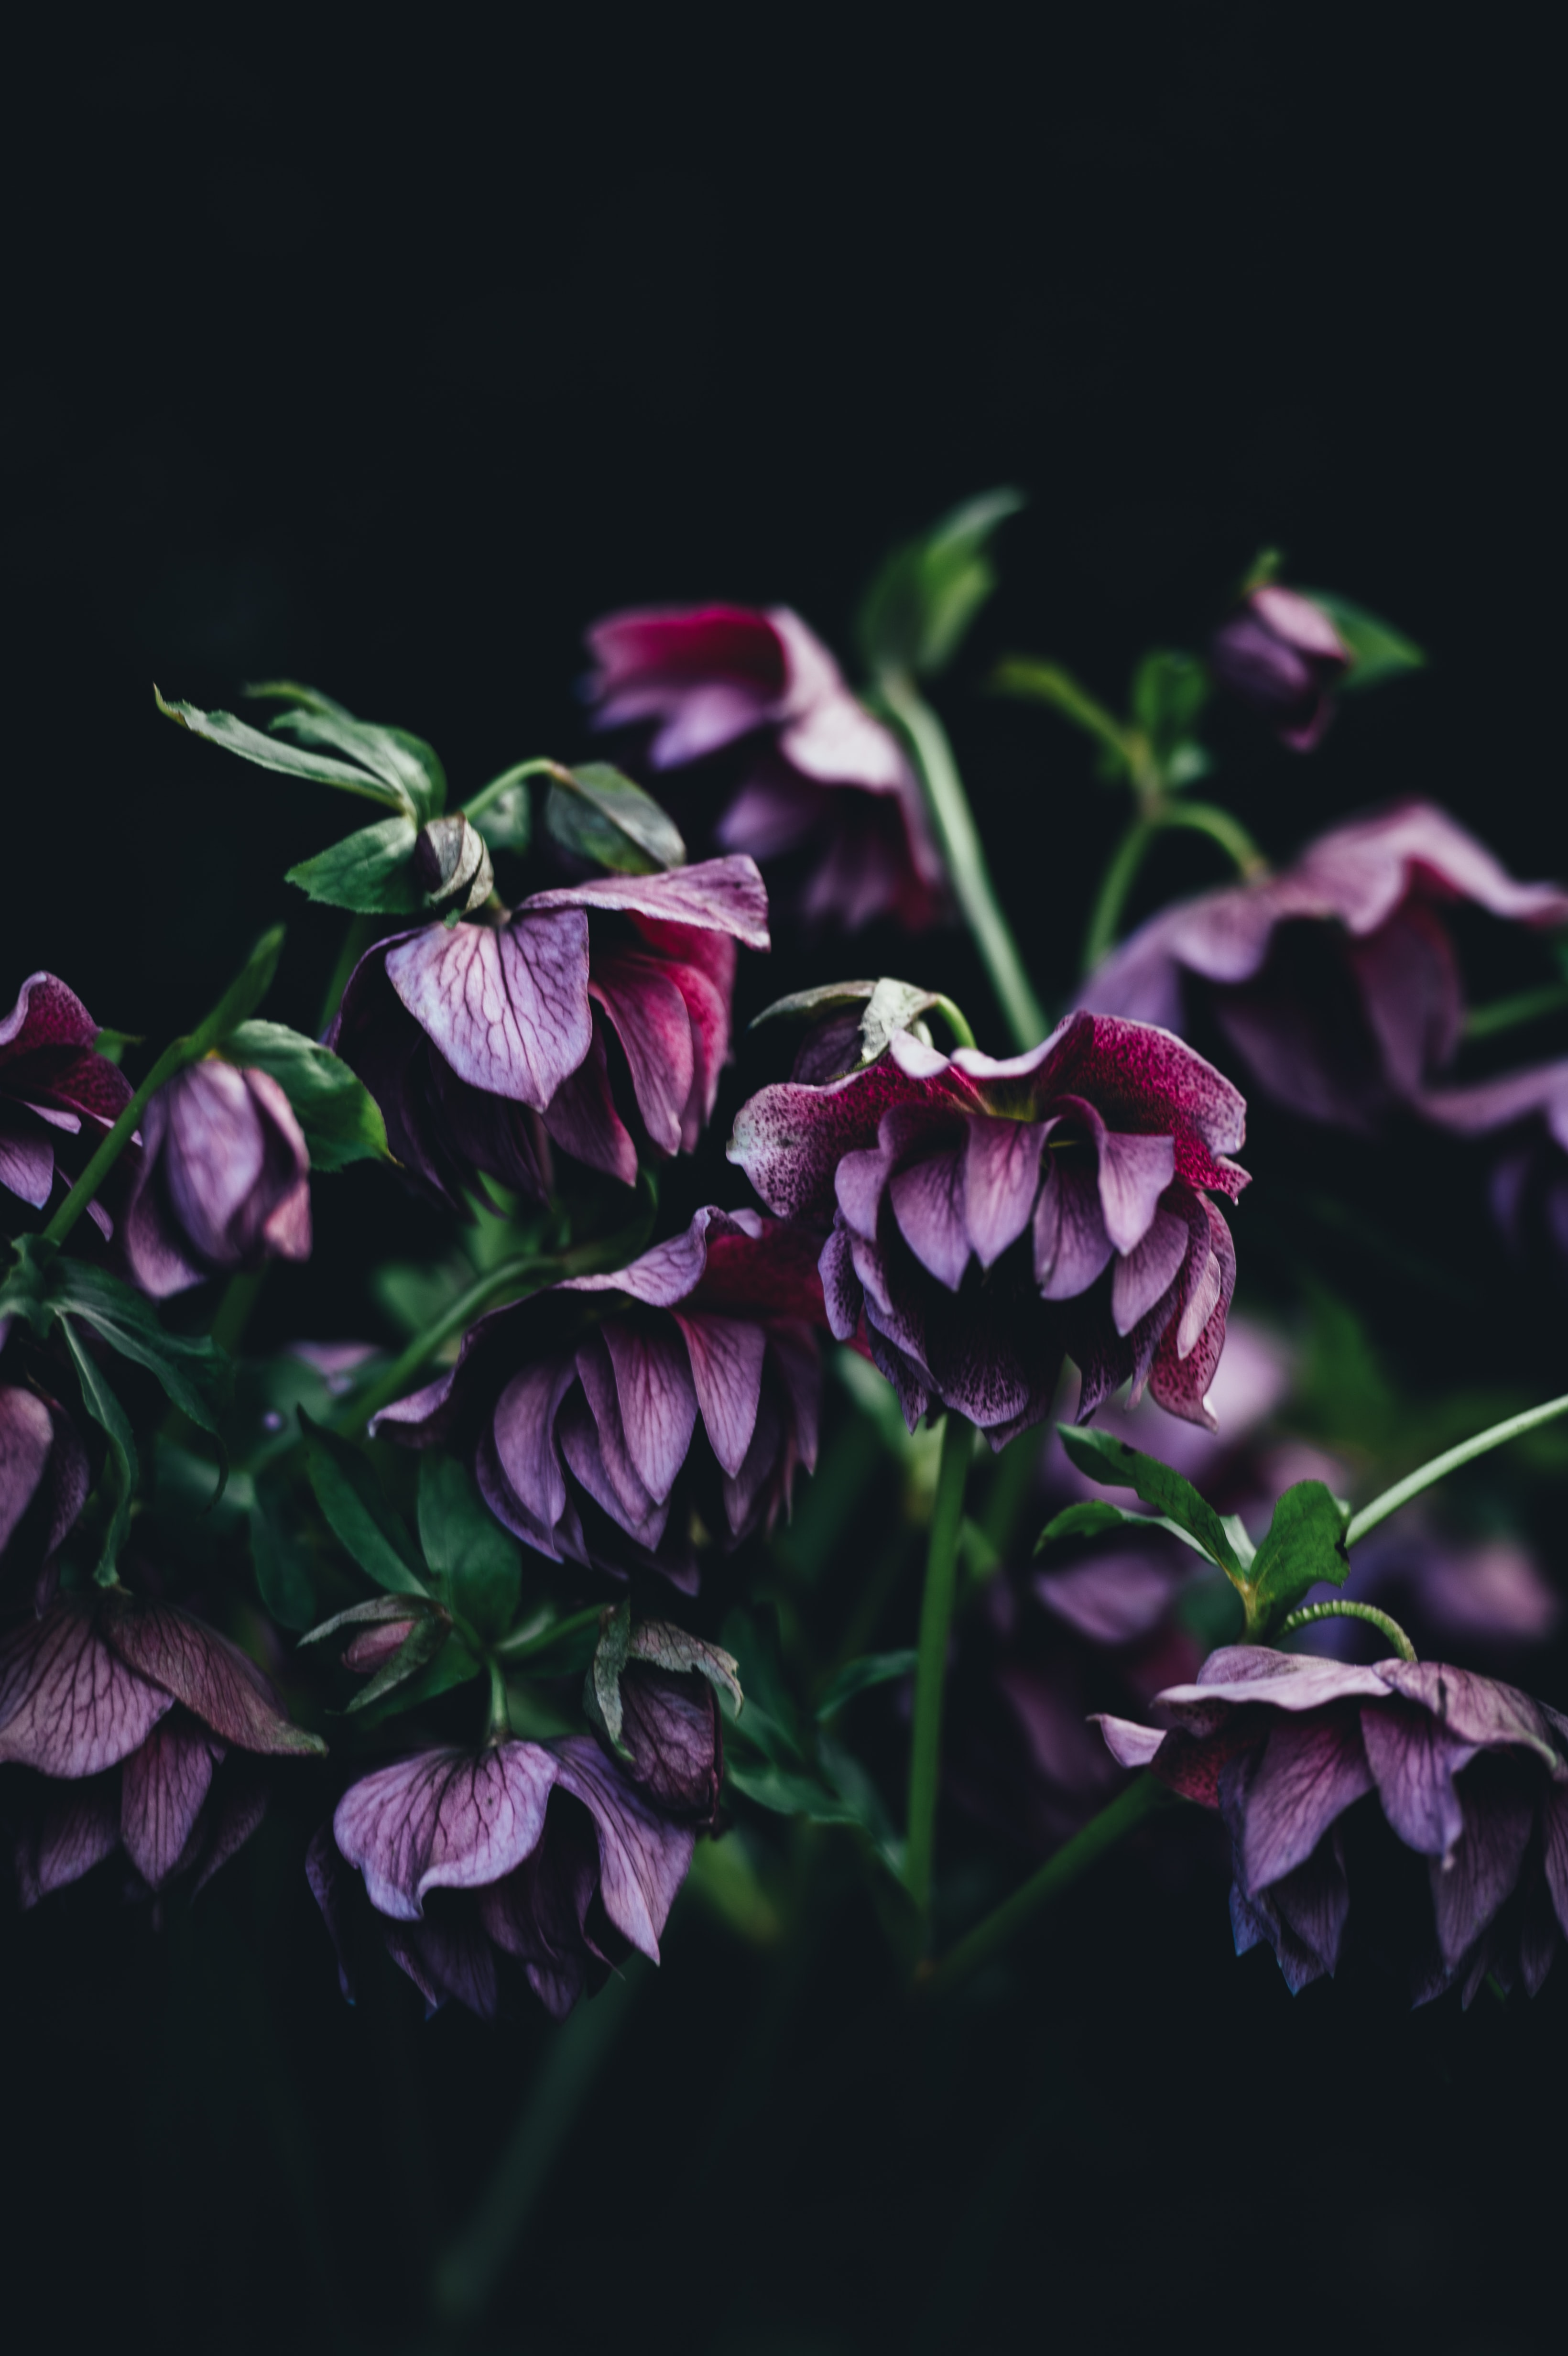 Purple hellebore flowers leaning down against a black background